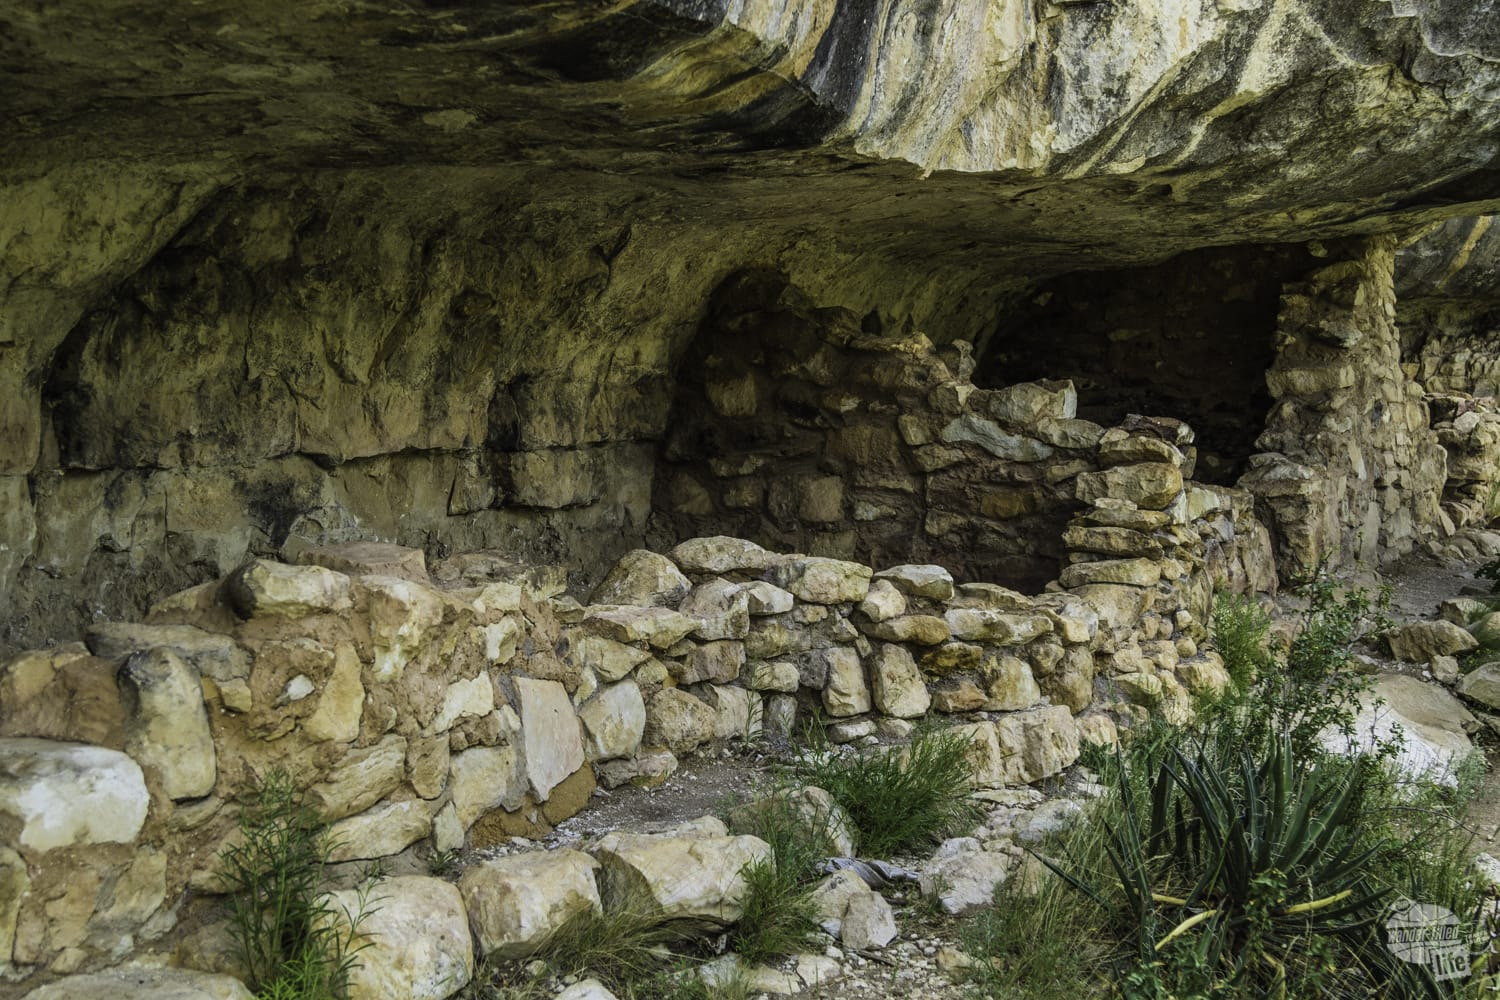 Cliff dwelling at Walnut Canyon National Monument